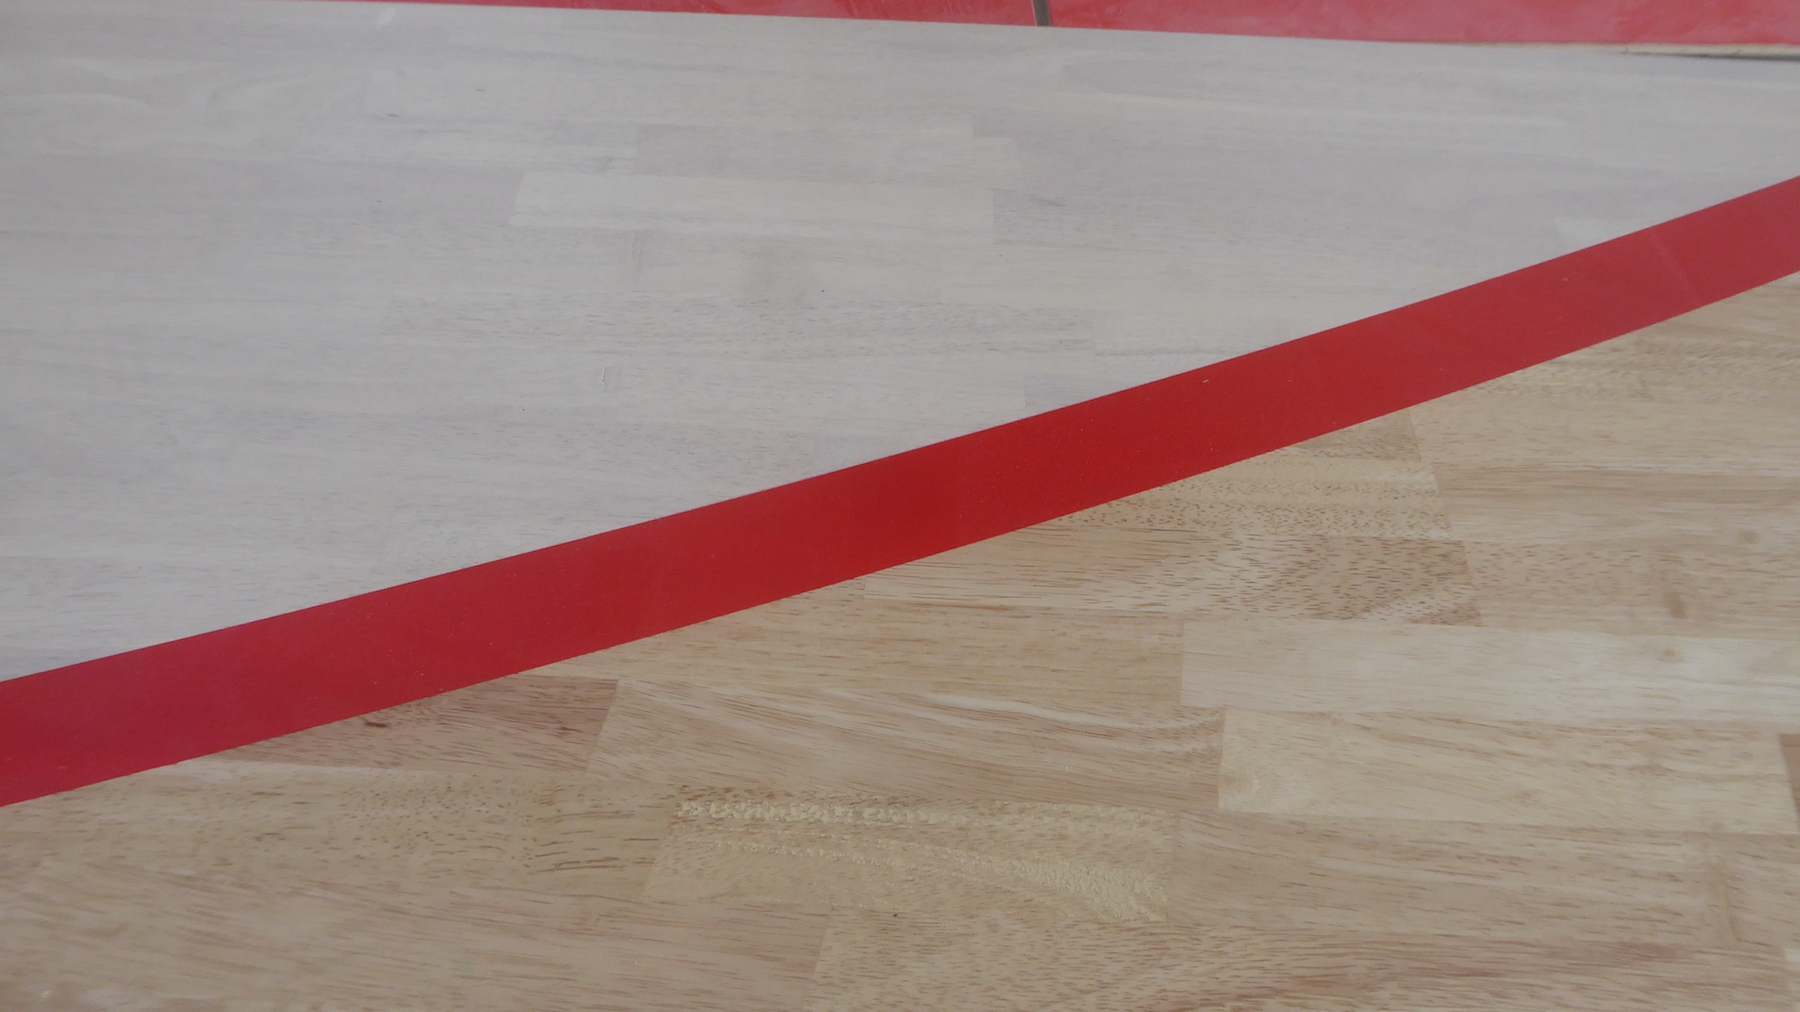 The details of the flooring